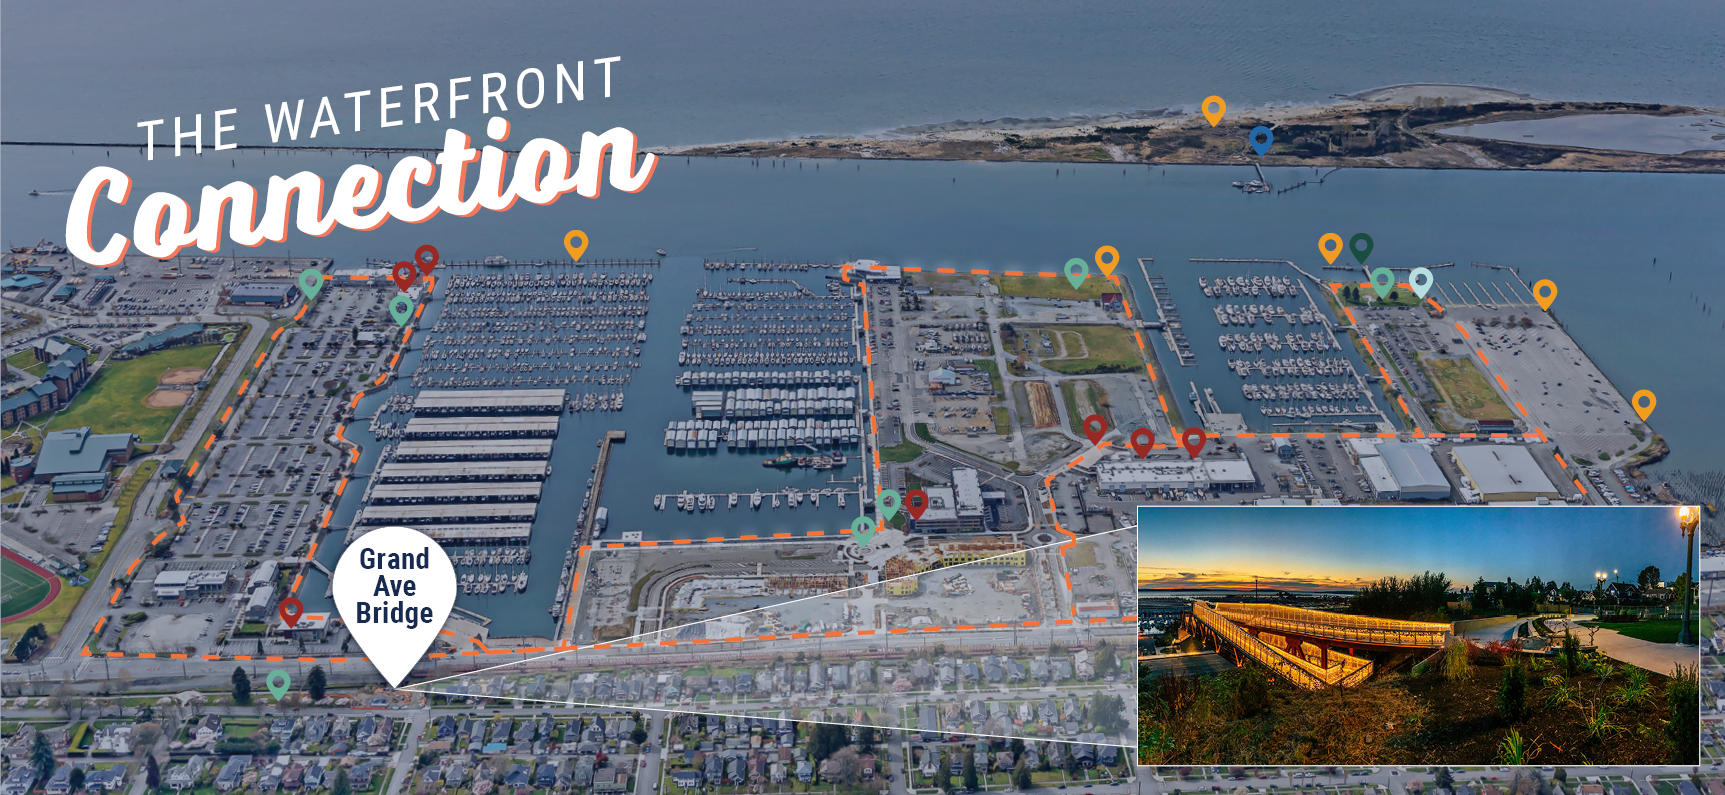 Port of Everett Map showing waterfront attractions: hiking trails, fishing, kayaking, dining, bridge